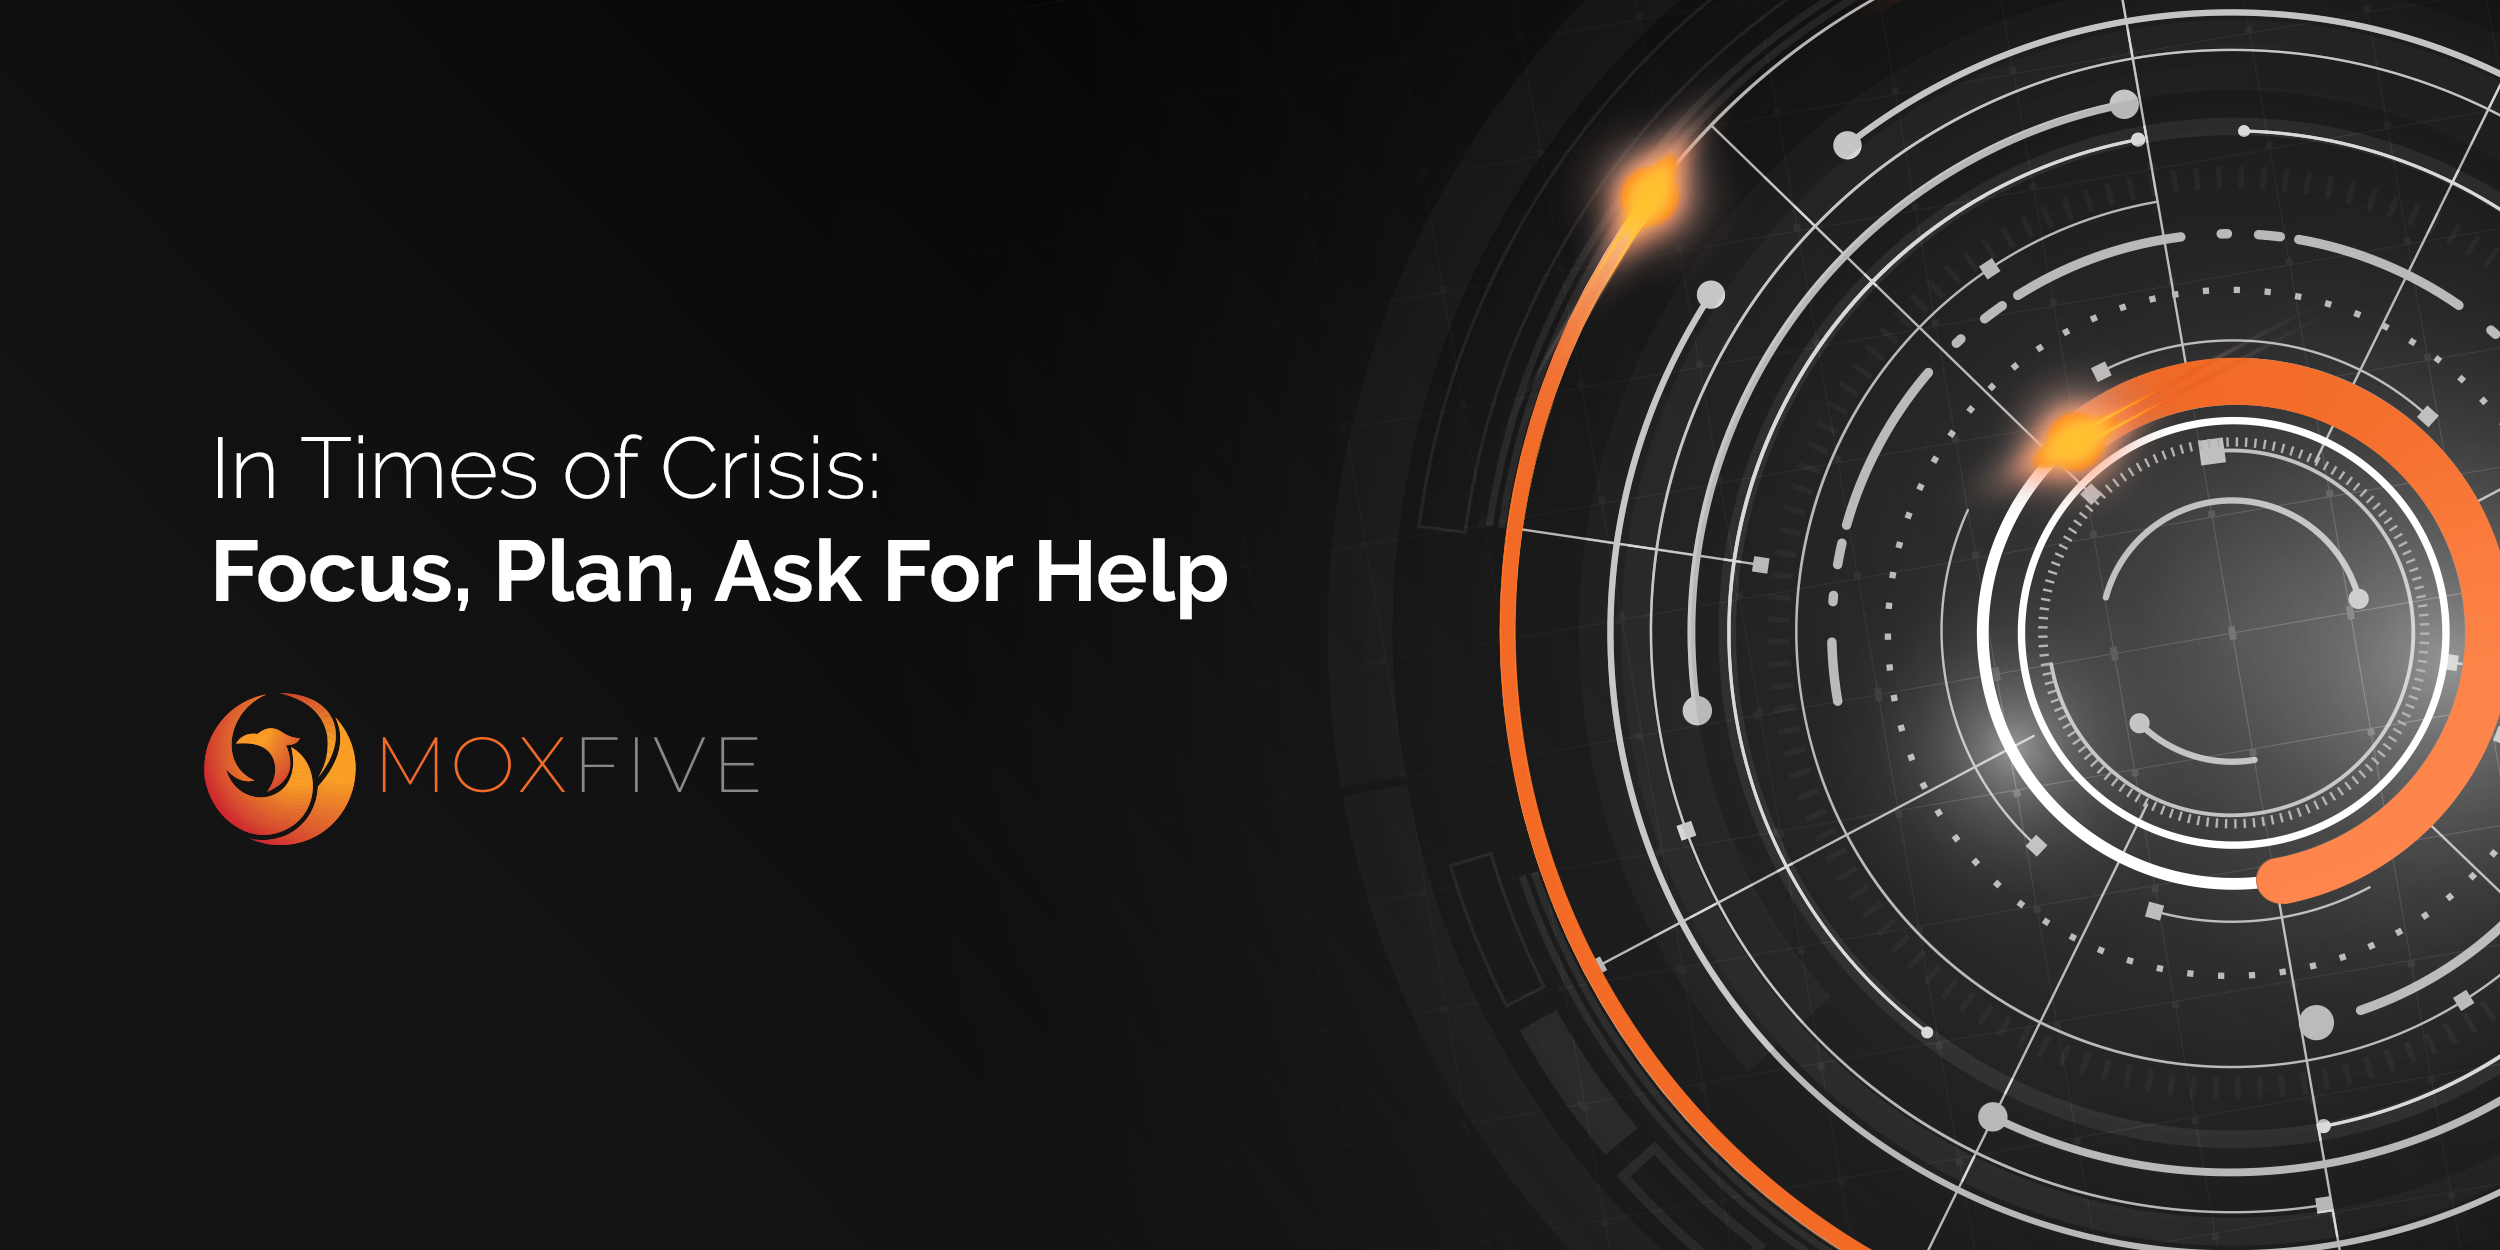 In Times of Crisis: Focus, Plan, Ask for Help